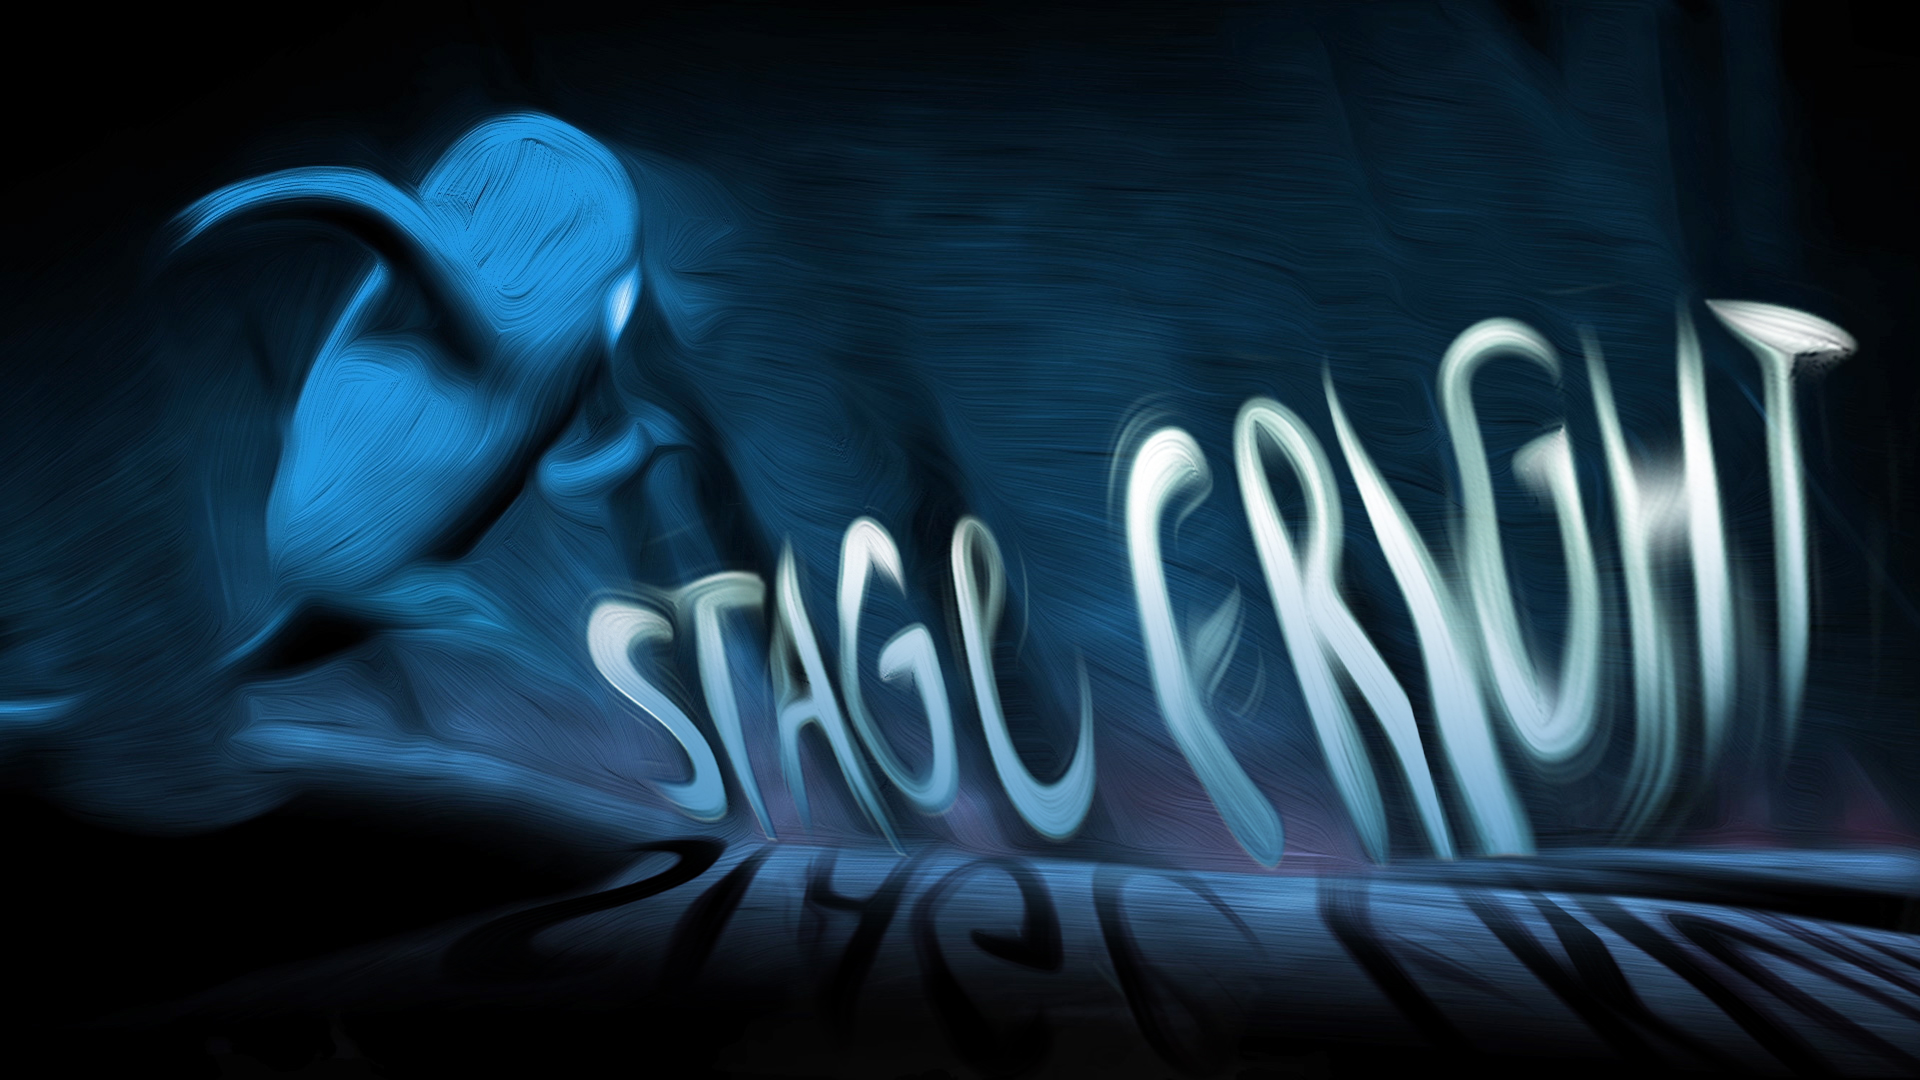 003 1306 08 A Cho Mikael Stagefright 16x9thumb Essay On Stage Fear Awful Write An Overcoming Full